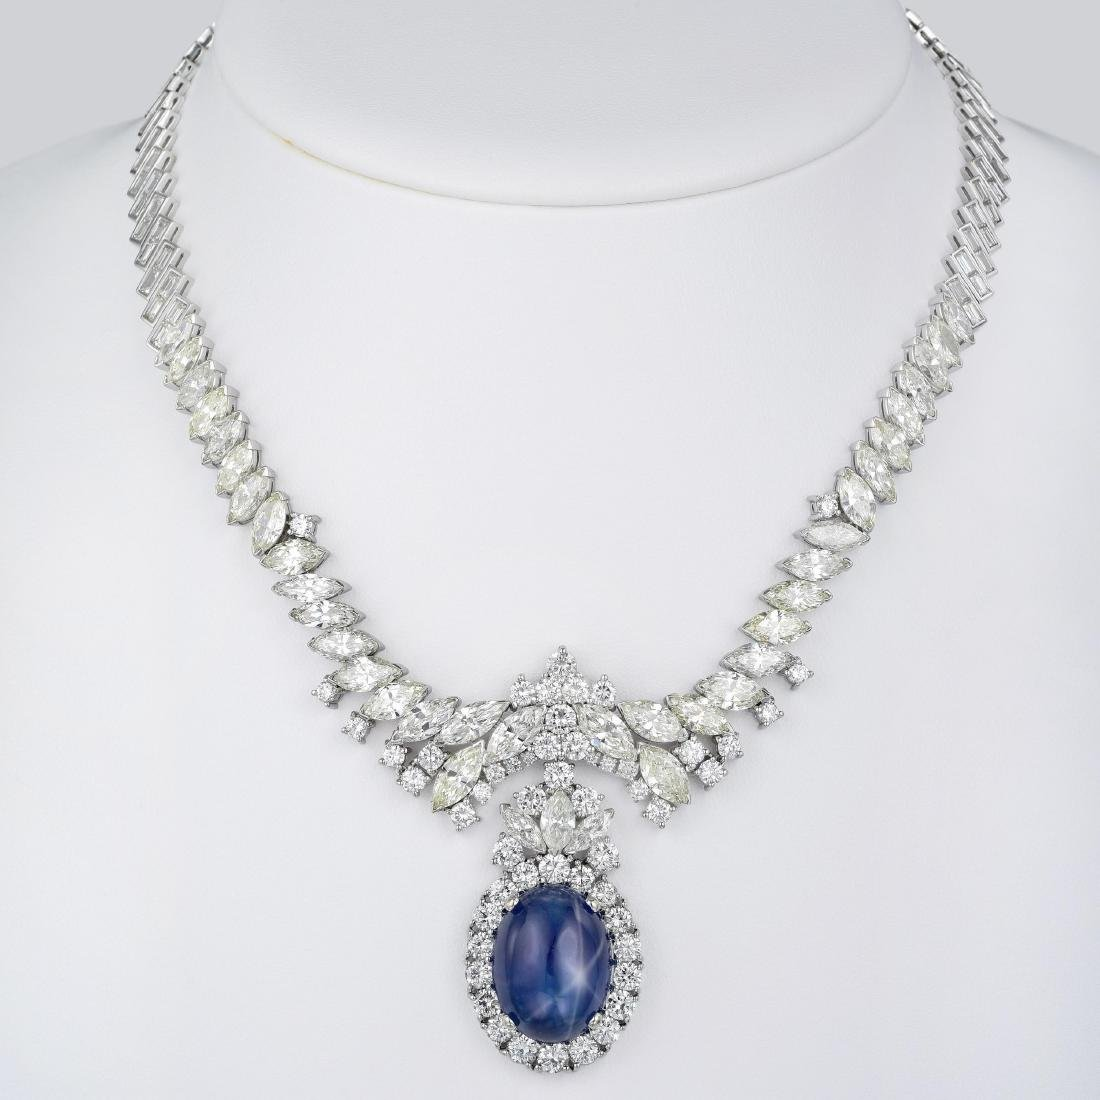 A Star Sapphire and Diamond Necklace and Earrings Set - 5